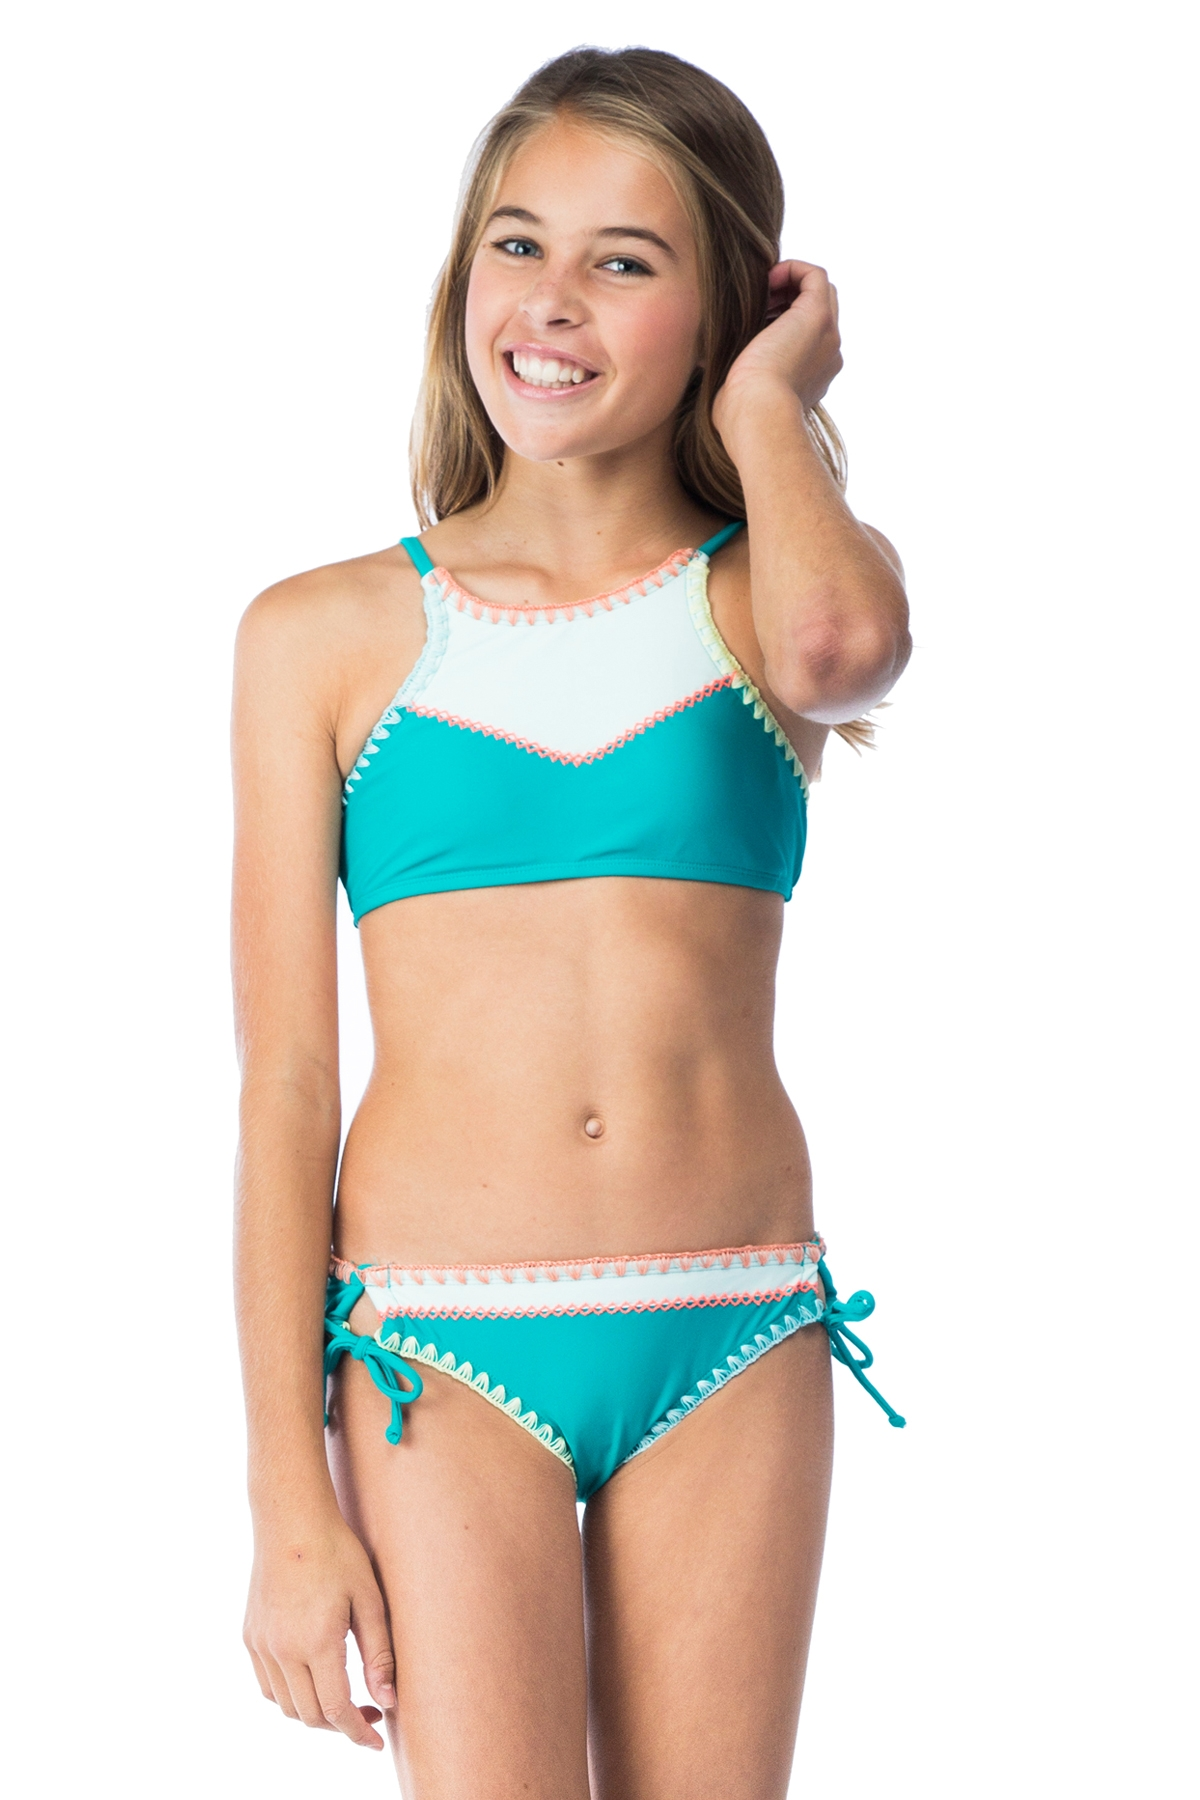 Hobie Girls Keep The Piece High Neck Top with Tie Side Hipster Swim Set 7